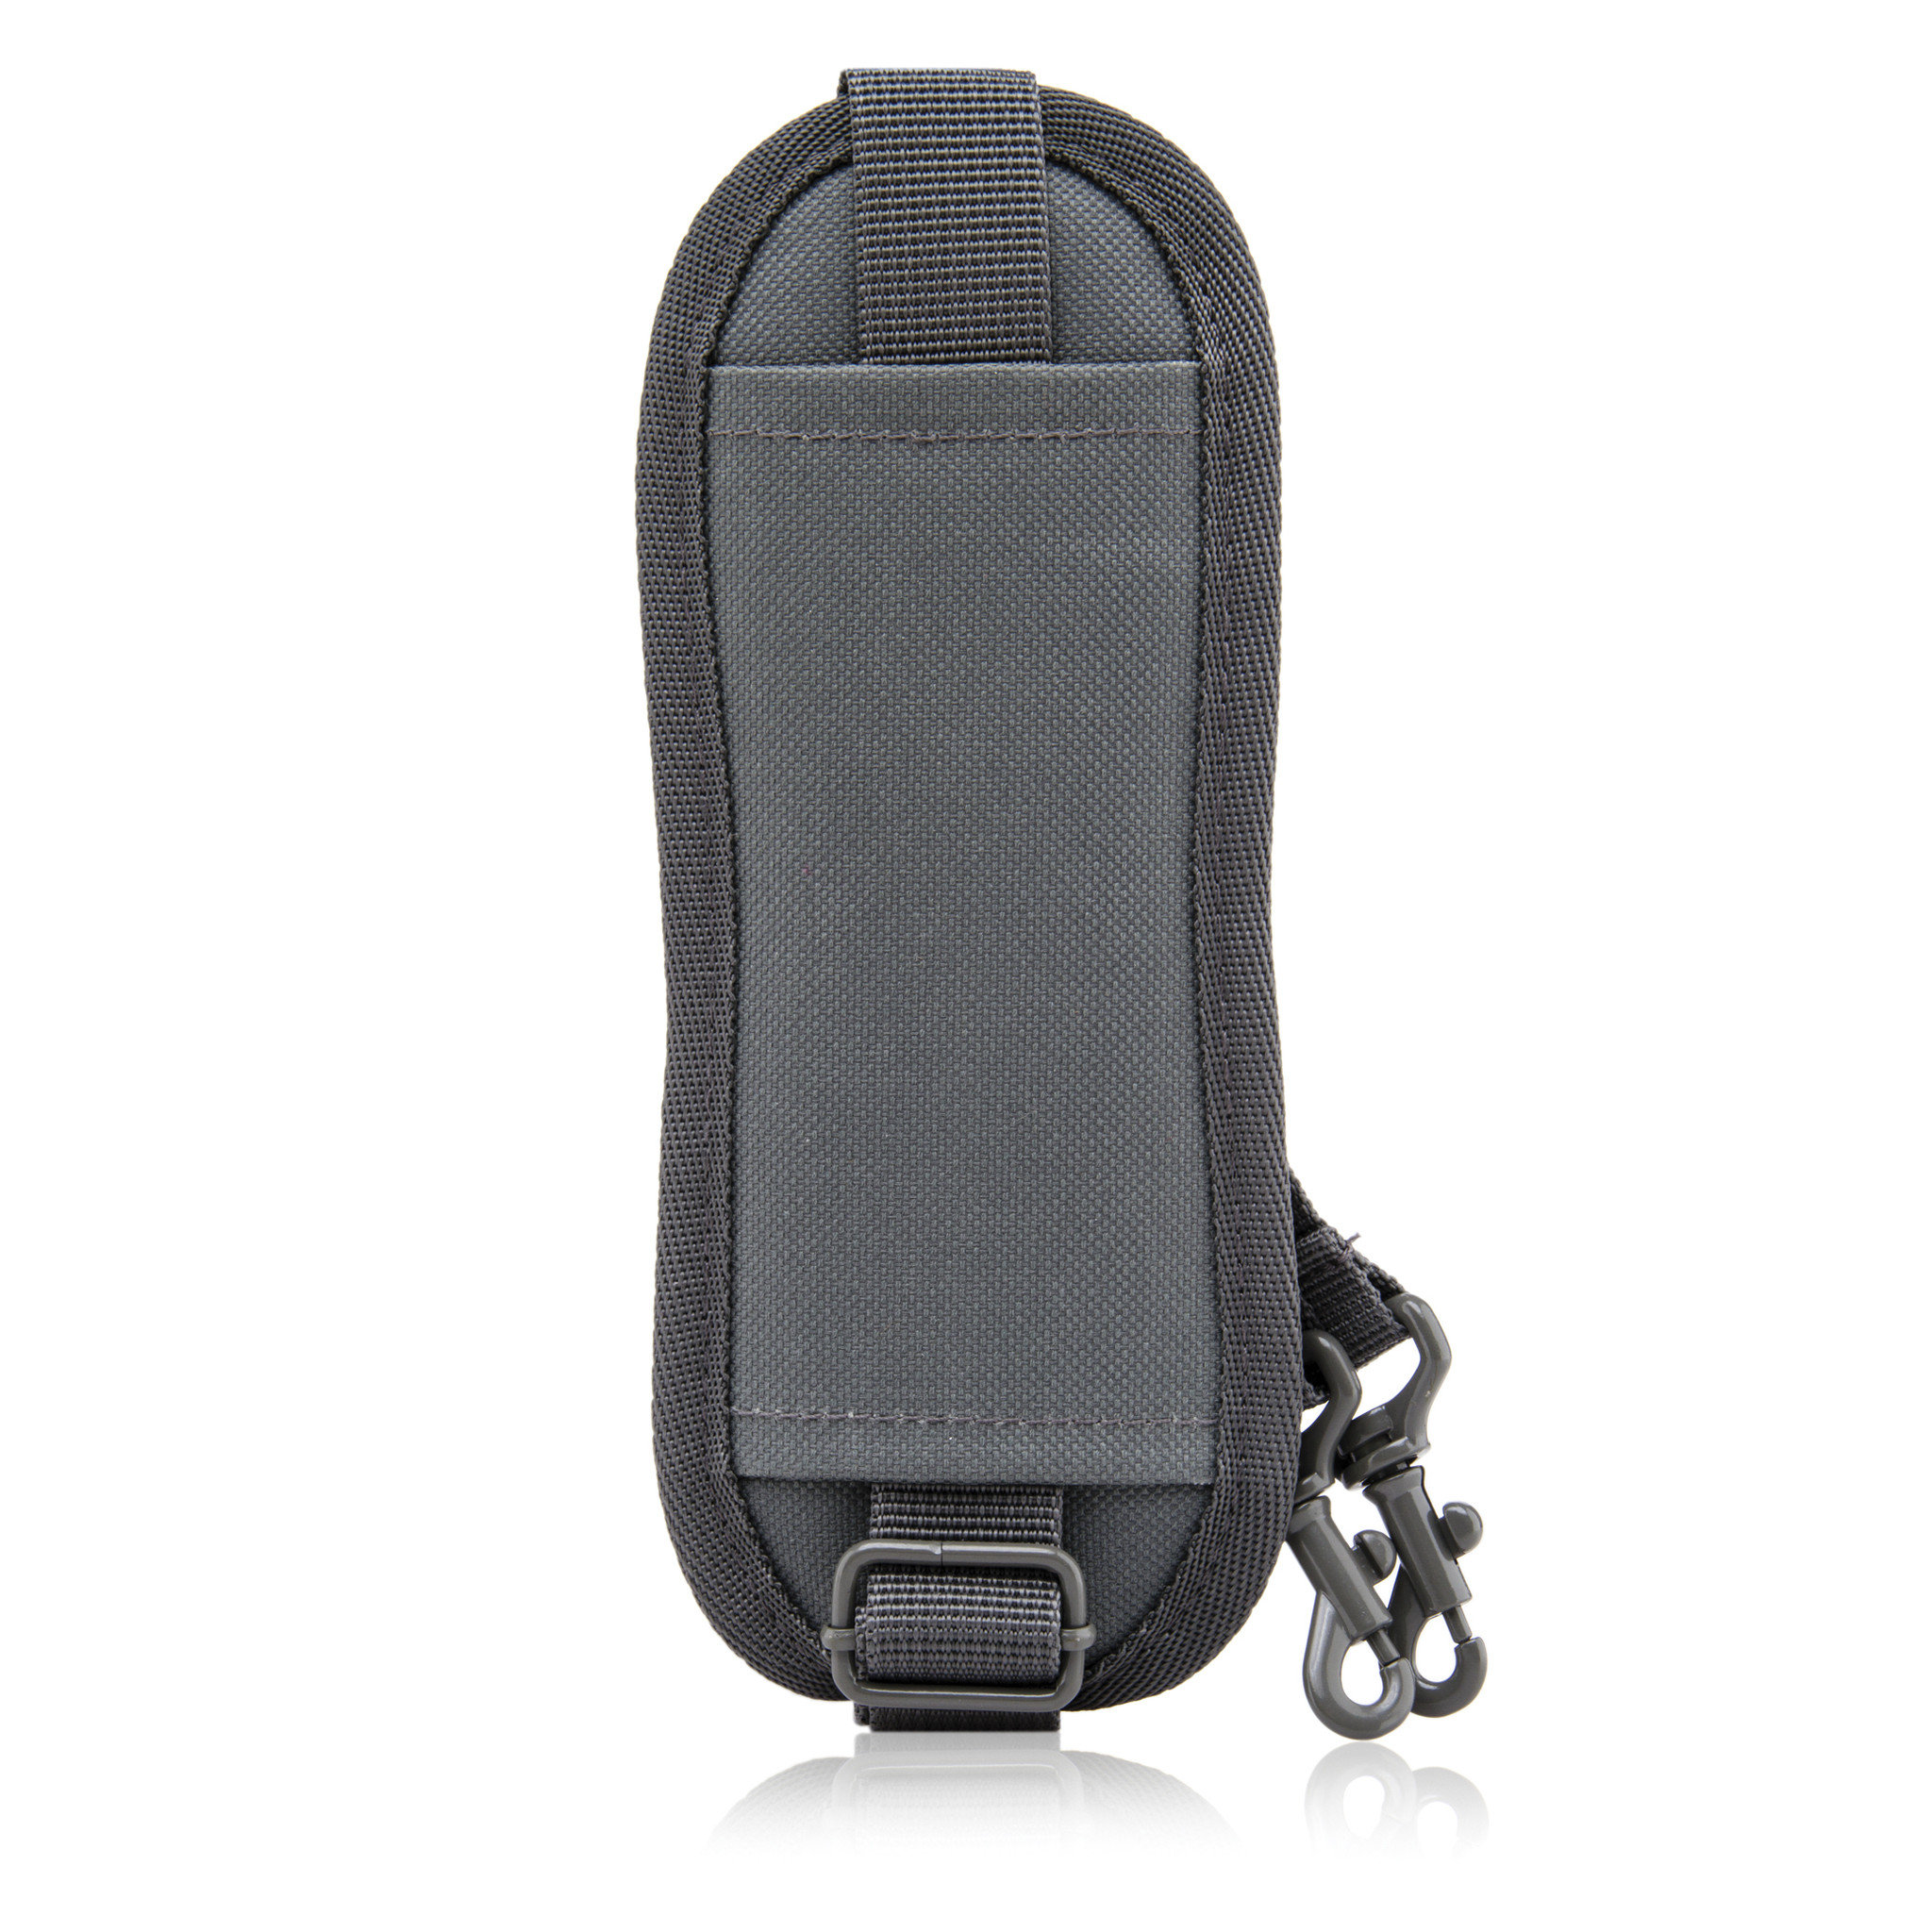 Gobi Gear Adjustable Shoulder Strap